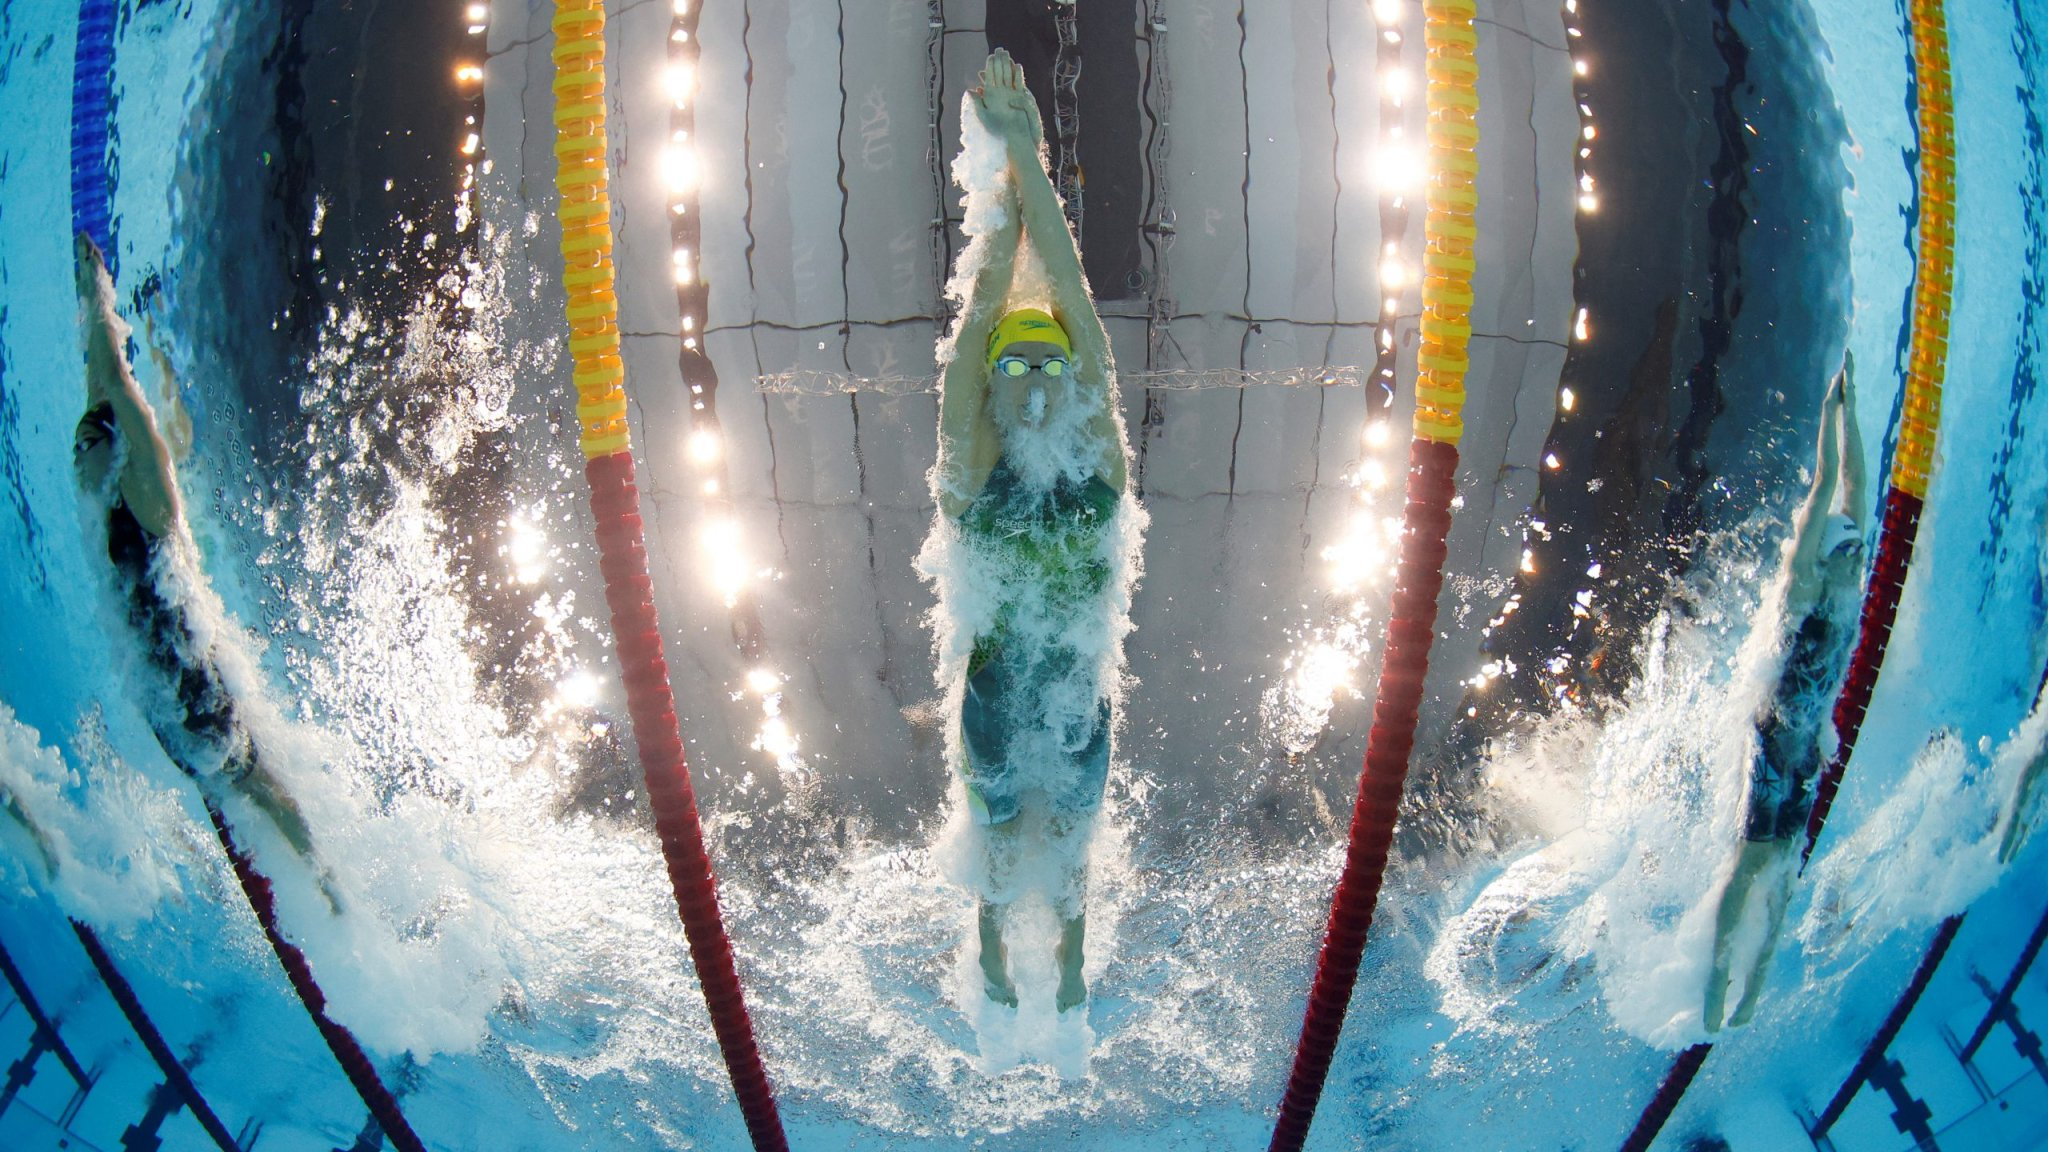 Olympics-Swimming-McKeon smashes Olympic women's 100m freestyle record in heat